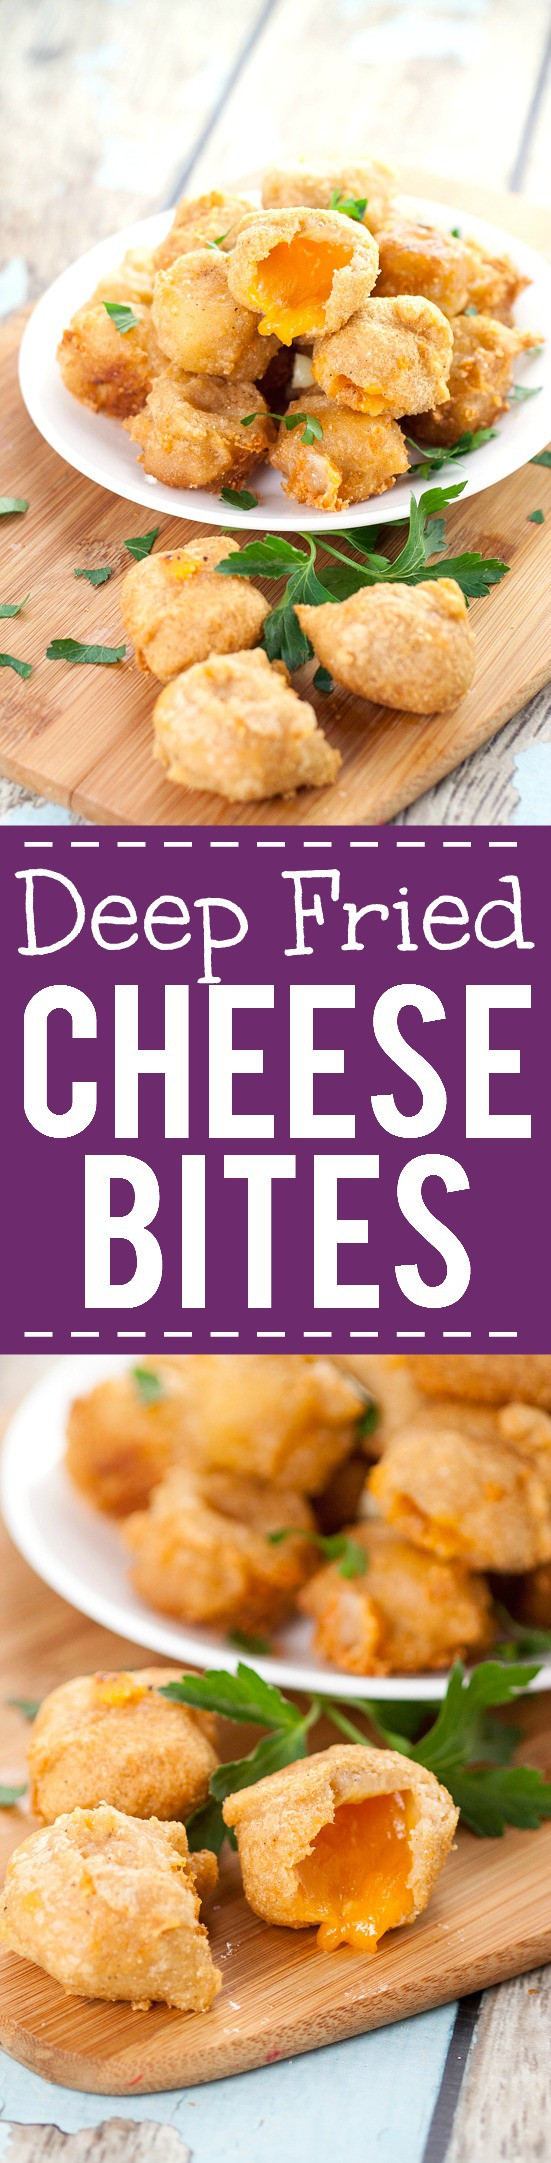 Deep Fried Cheese Bites recipe -Crispy, cheesy Deep Fried Cheese Bites in a flavorful beer batter make a perfect snack, appetizer, or even a side to your favorite burger. A cheese lover's dream! Love this for an easy appetizer recipe.